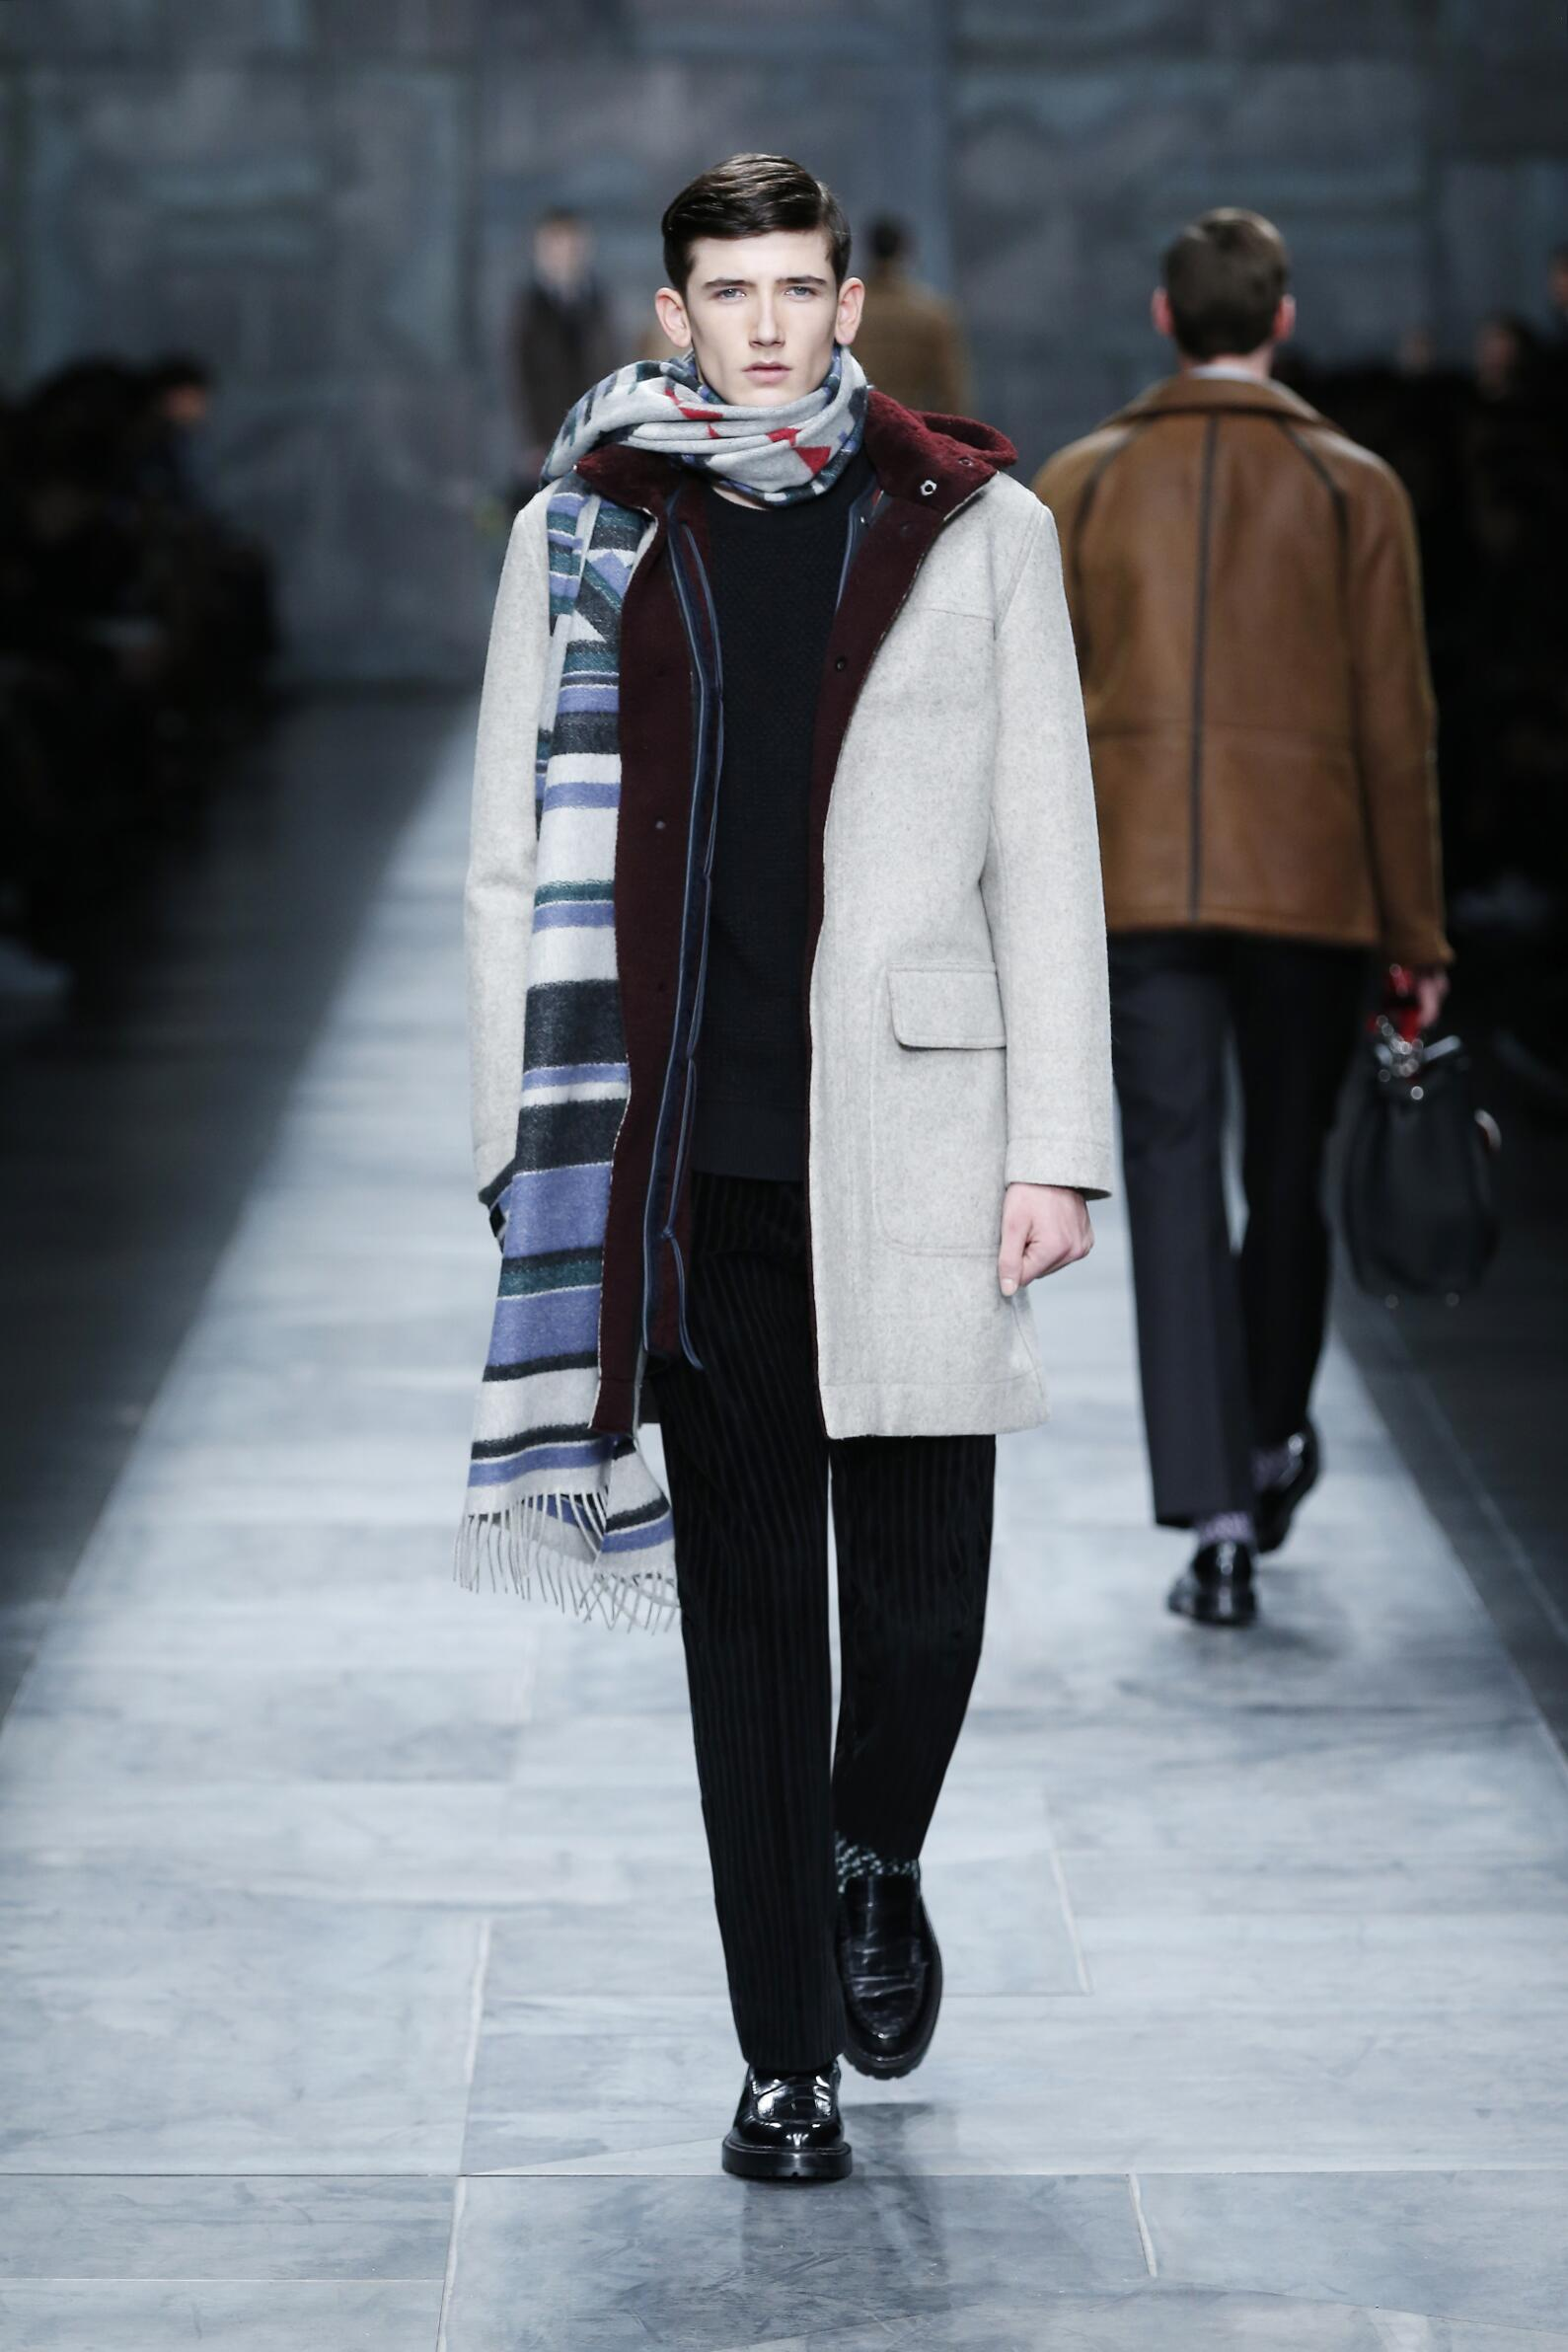 Fendi Fall Winter 2015 16 Men's Collection Milan Fashion Week Fashion Show